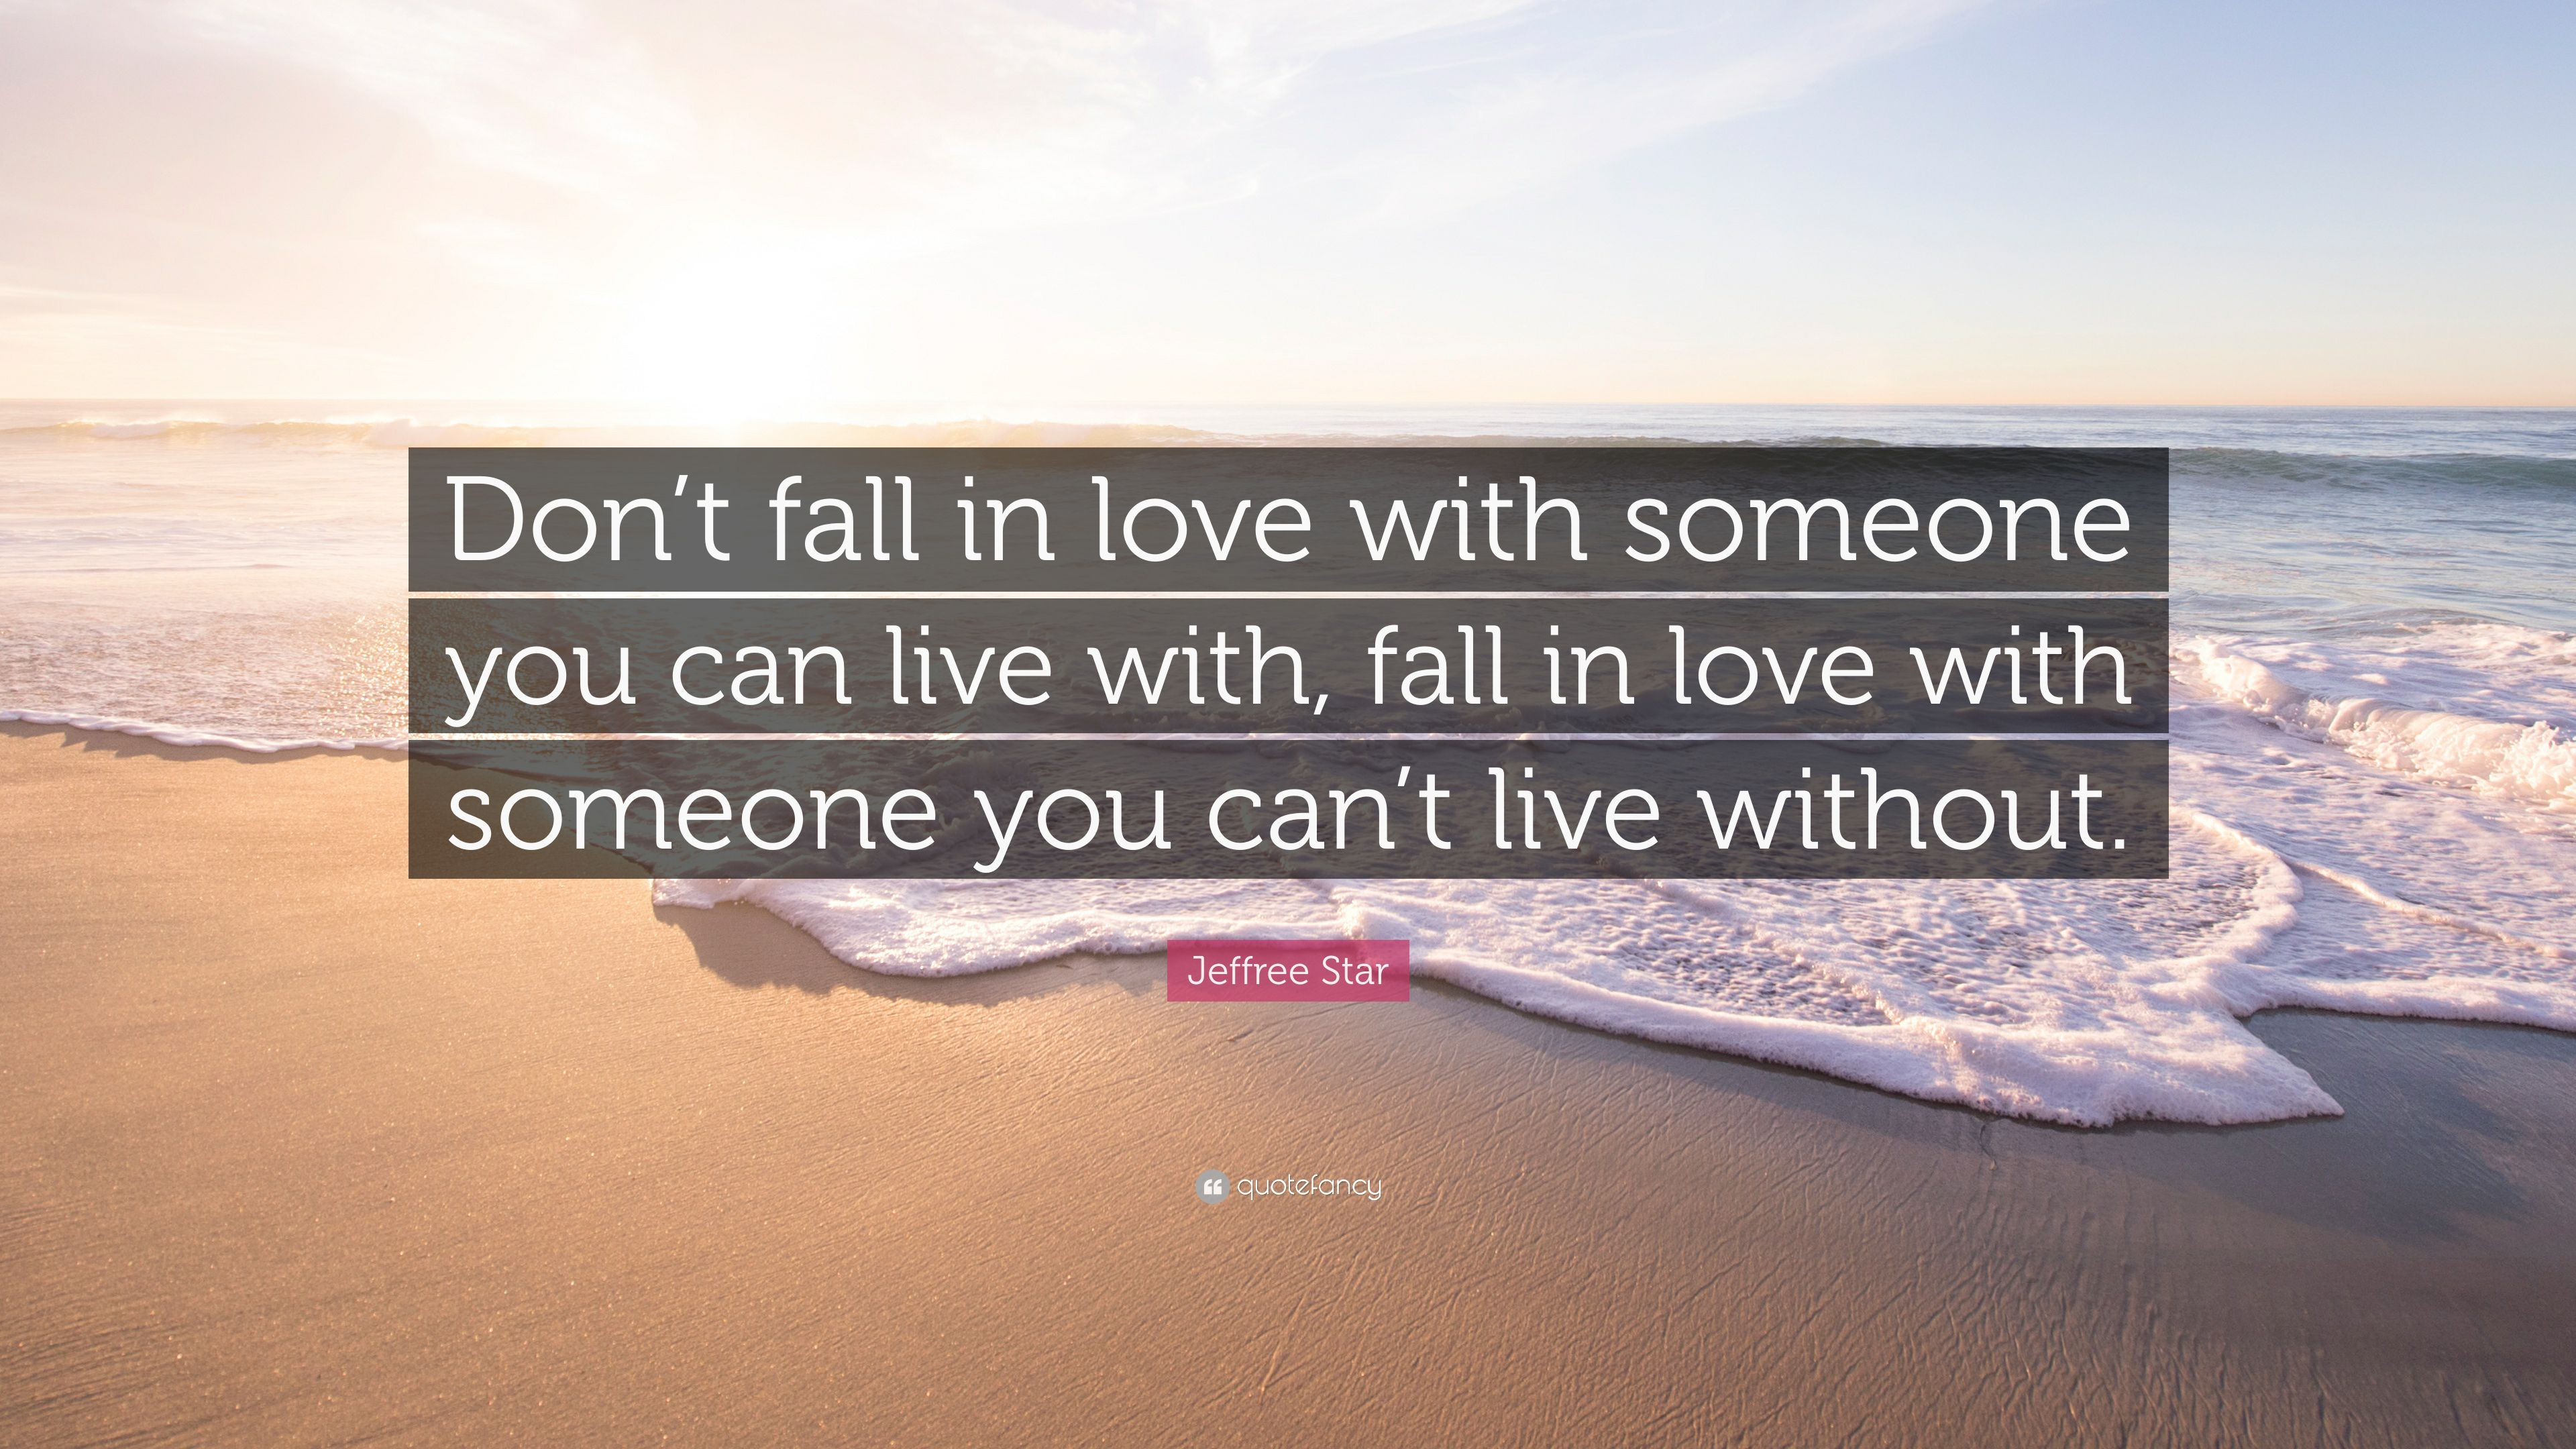 Jeffree Star Quote: Dont fall in love with someone you